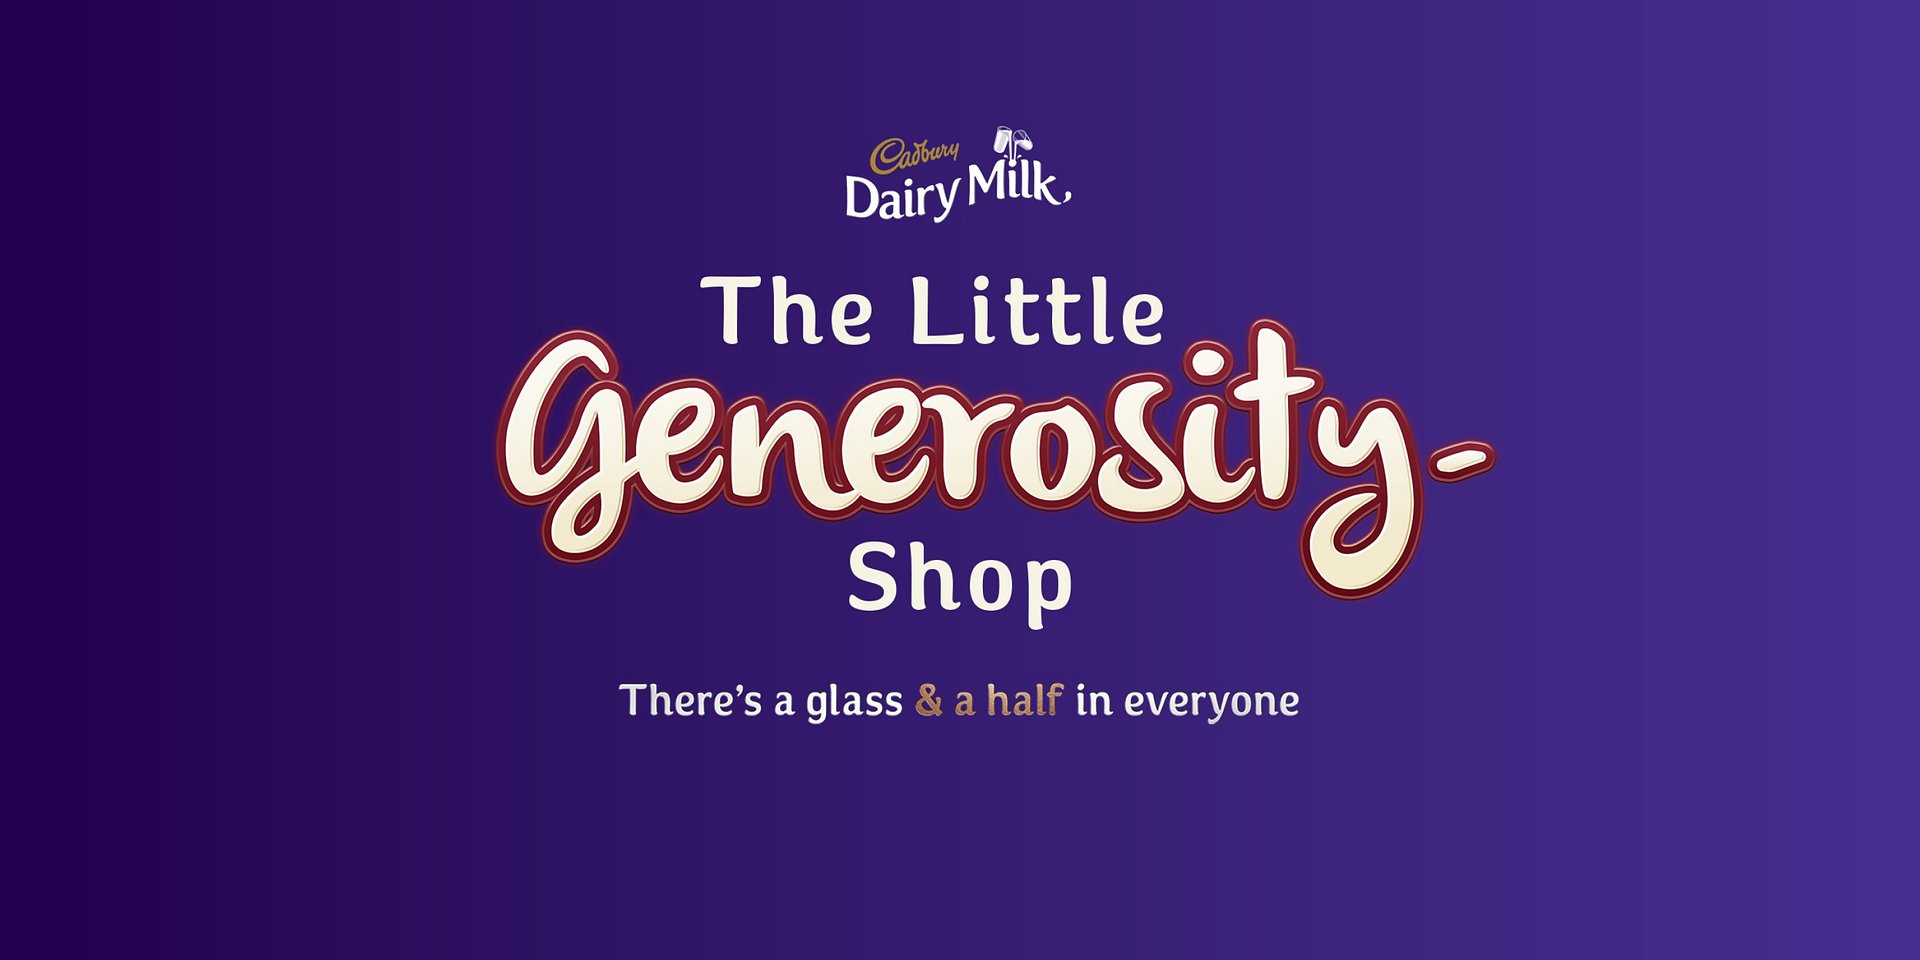 Cadbury Dairy Milk sparks selfless giving through 'The Little Generosity Shop'